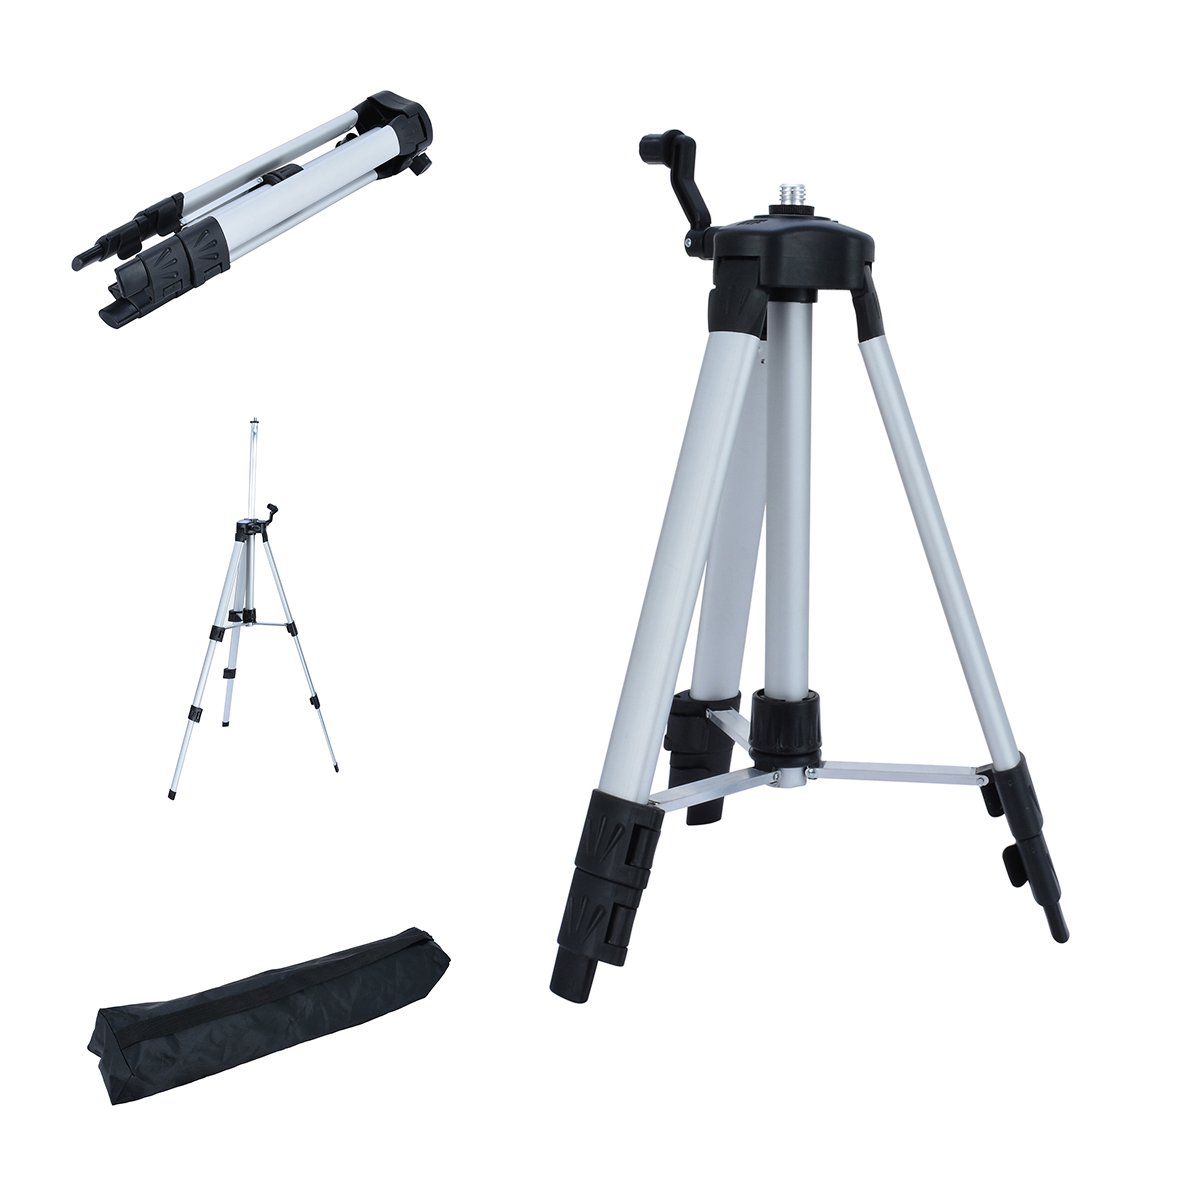 1pc 360 Degree Laser Level Tripod Professional Self leveling Cross Laser Level Tripod Mayitr Measurement Analysis Instruments